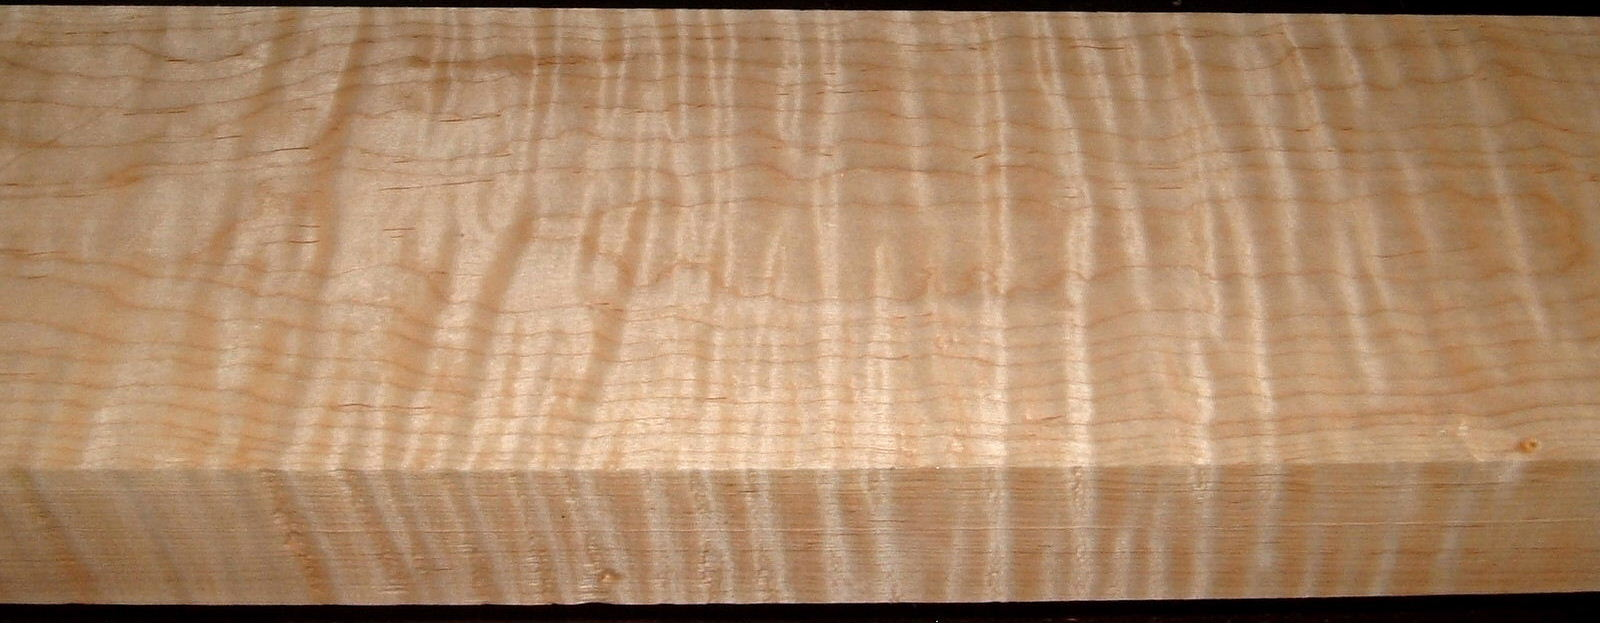 M2006-463, 1-7/8x6x45, 8/4 Curly Tiger Maple